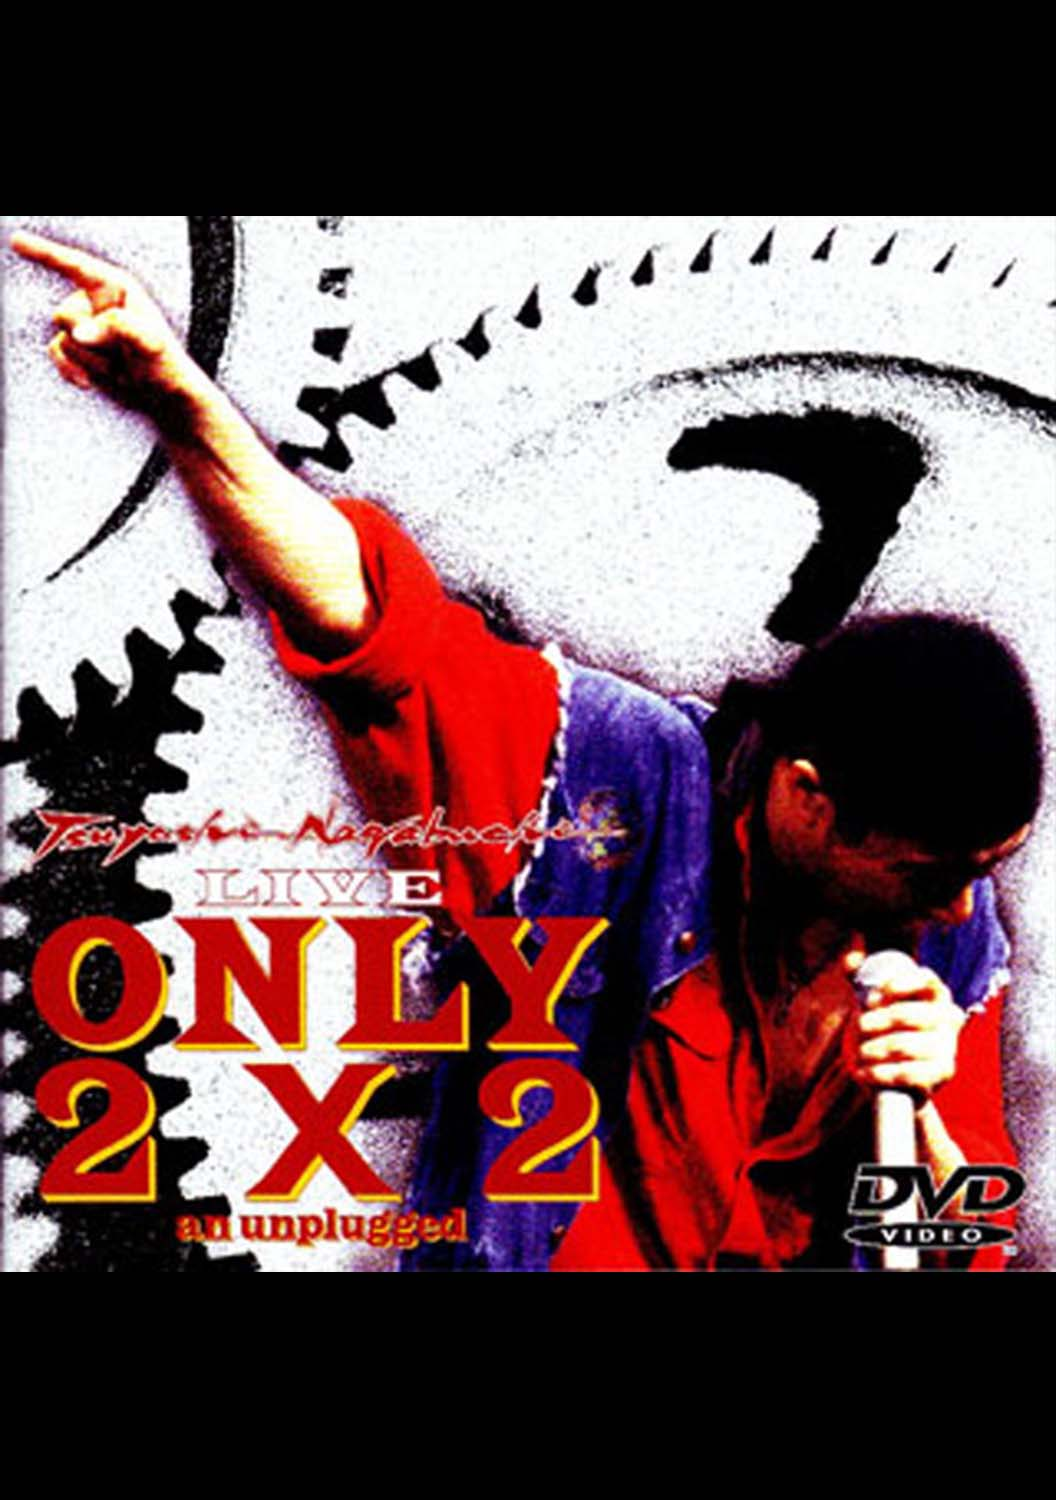 LIVE ONLY 2×2 an unplugged